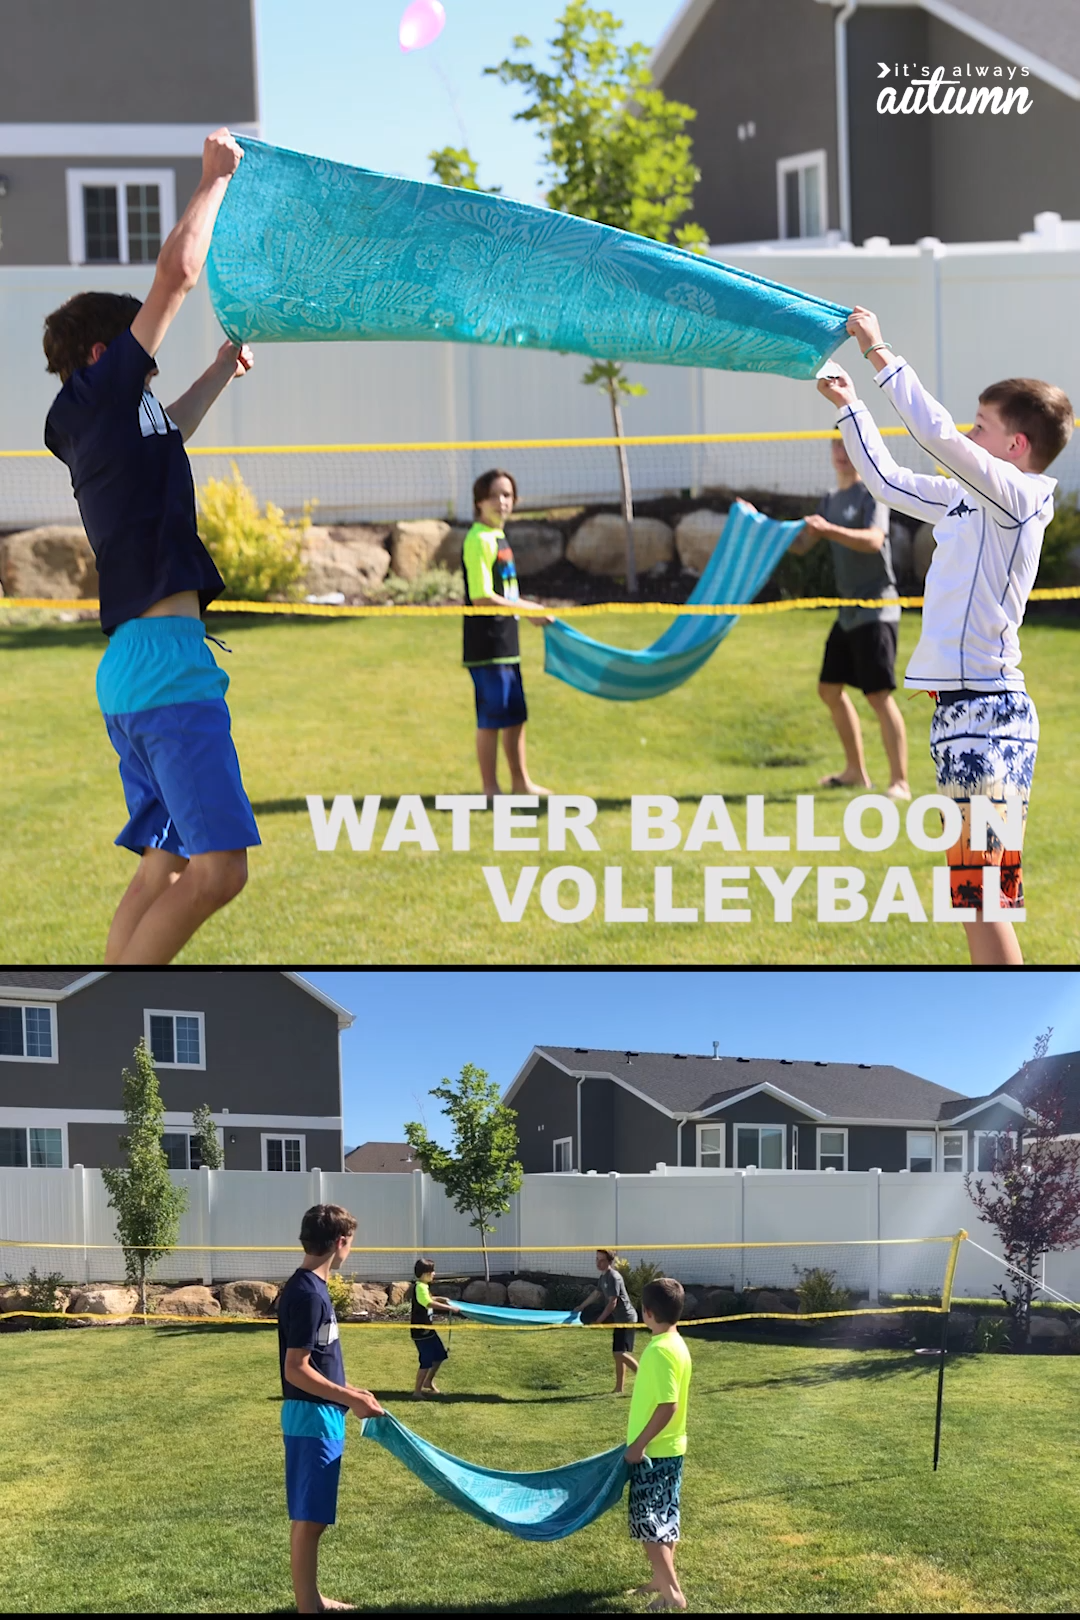 Water Balloon Volleyball Hilarious Summer Water Game It S Always Autumn Video Video Water Games For Kids Water Games Youth Games